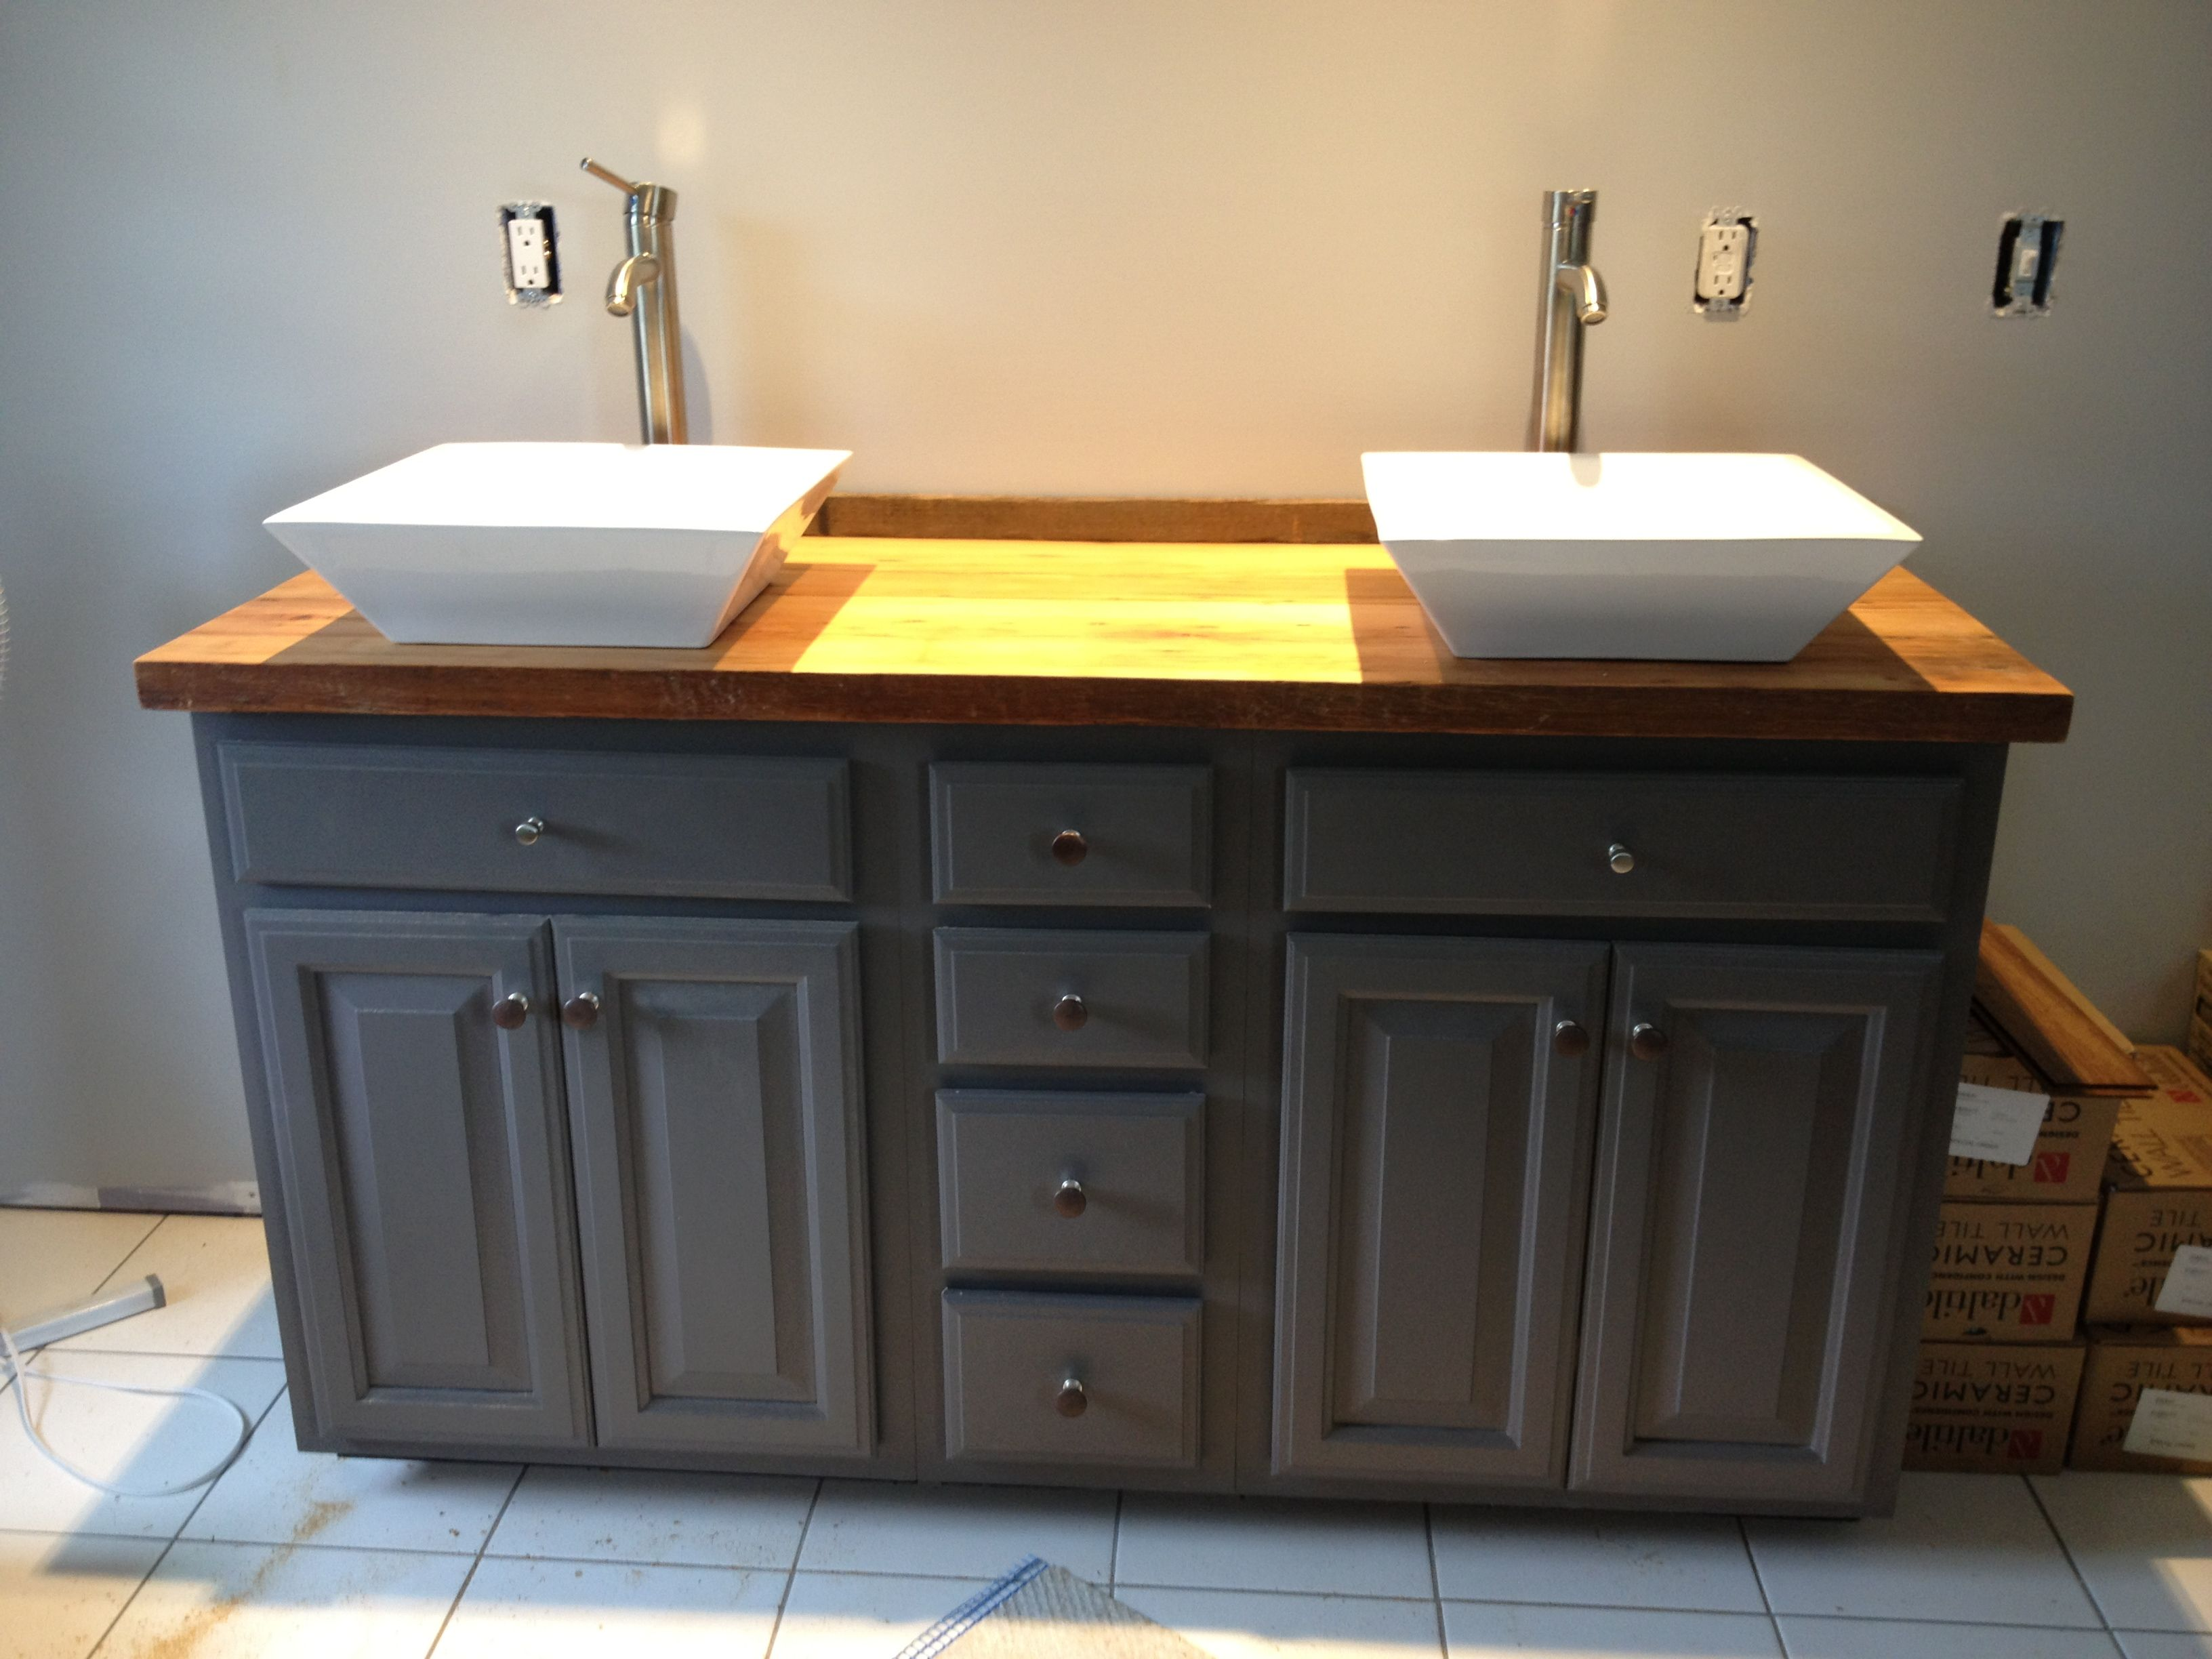 Bathroom Vanities Diy latest posts under: bathroom vanity tops | ideas | pinterest | diy